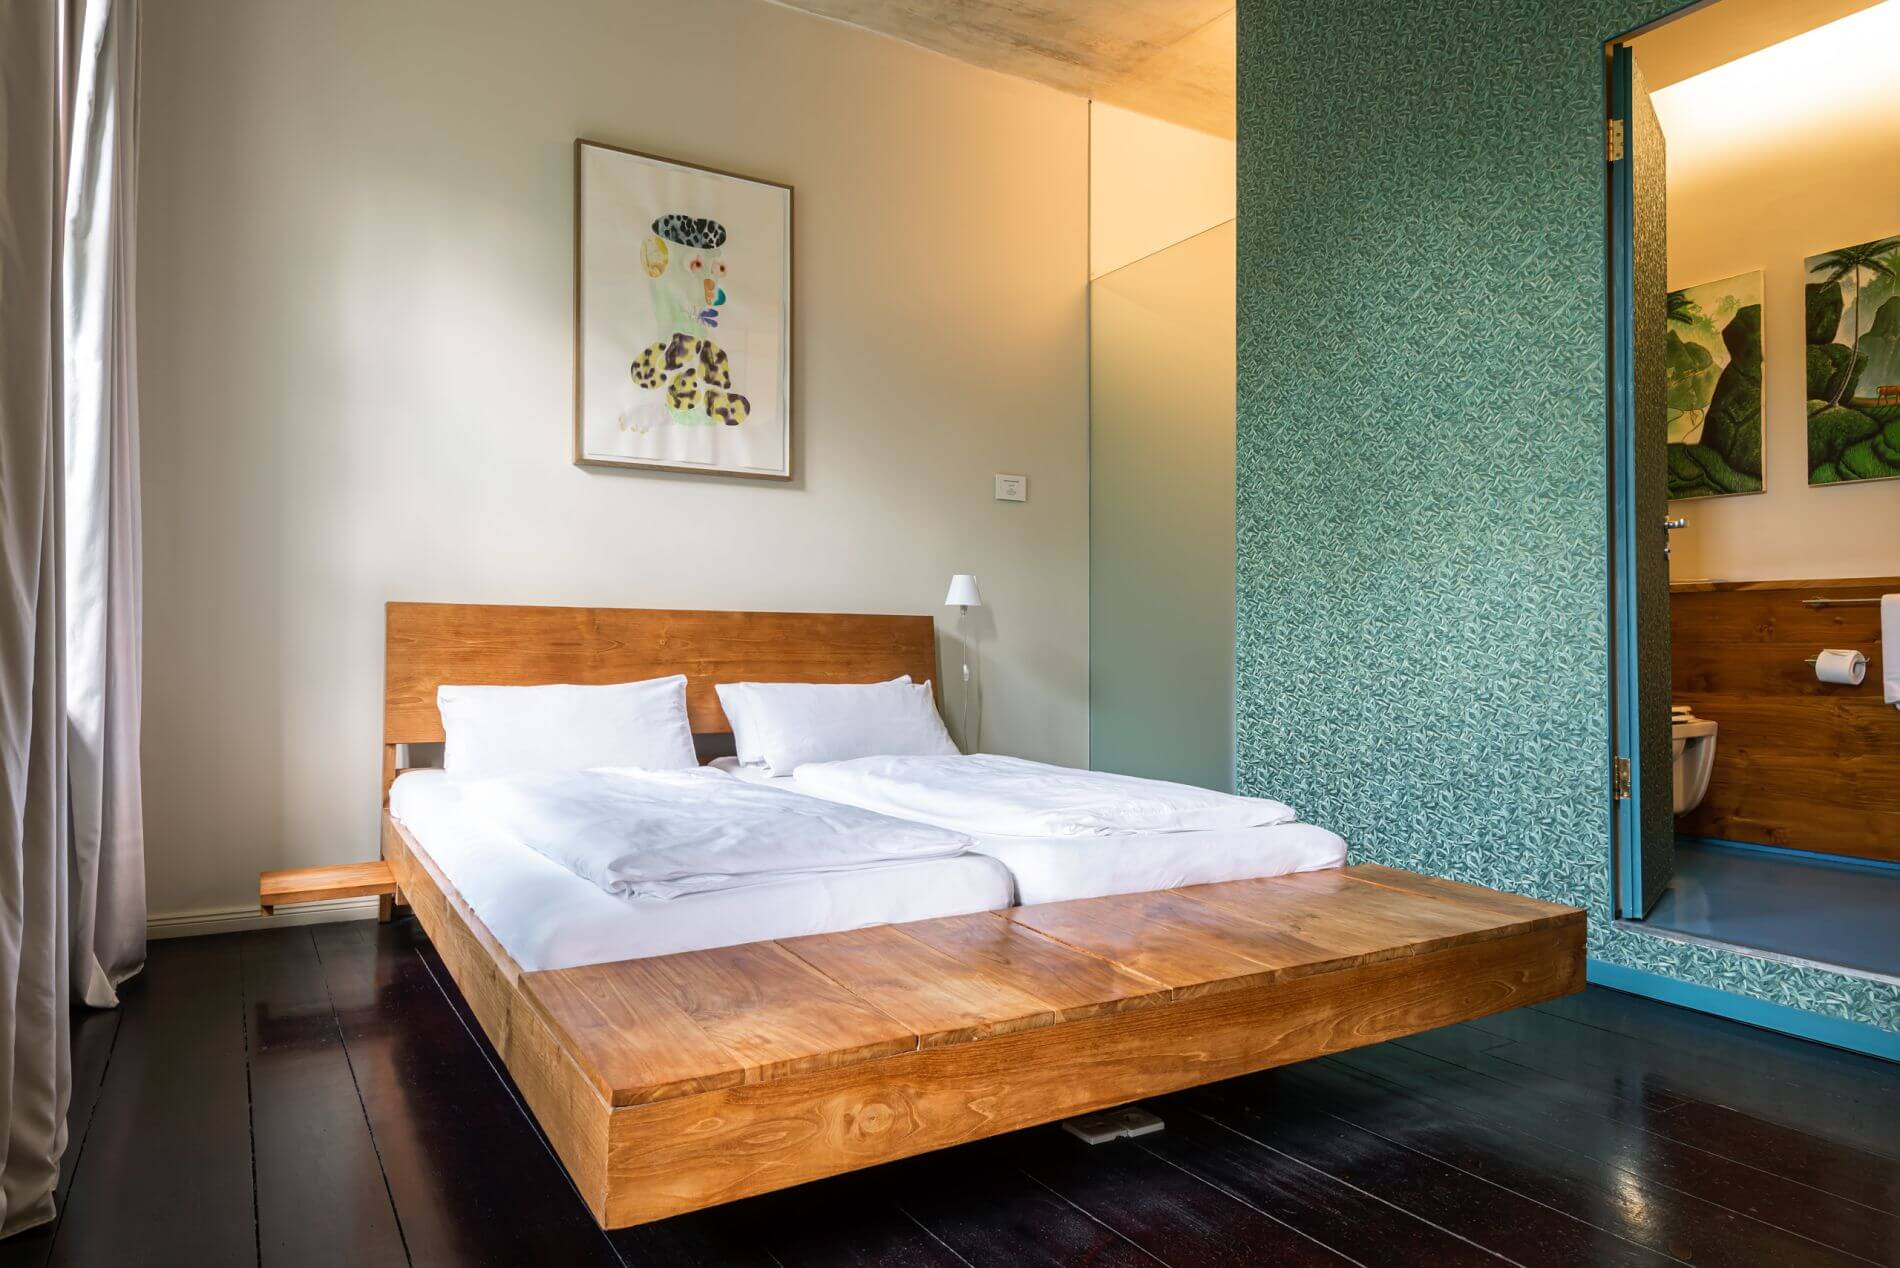 Serviced apartment in Berlin Prenzlauer Berg with instant booking option